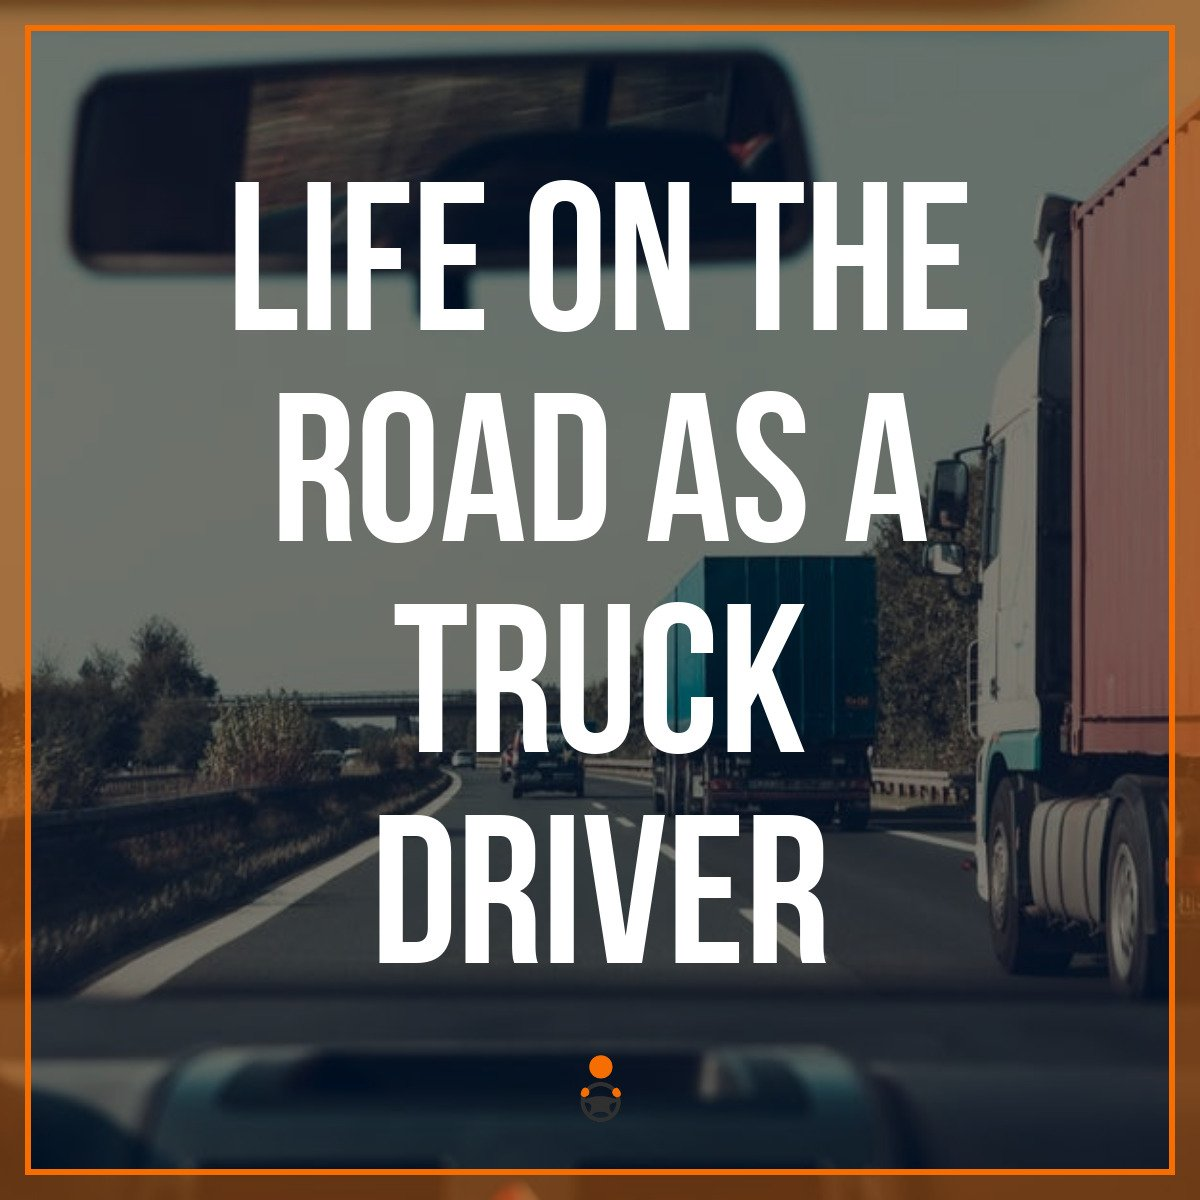 Truck Driver Salary and Life as a Truck Driver